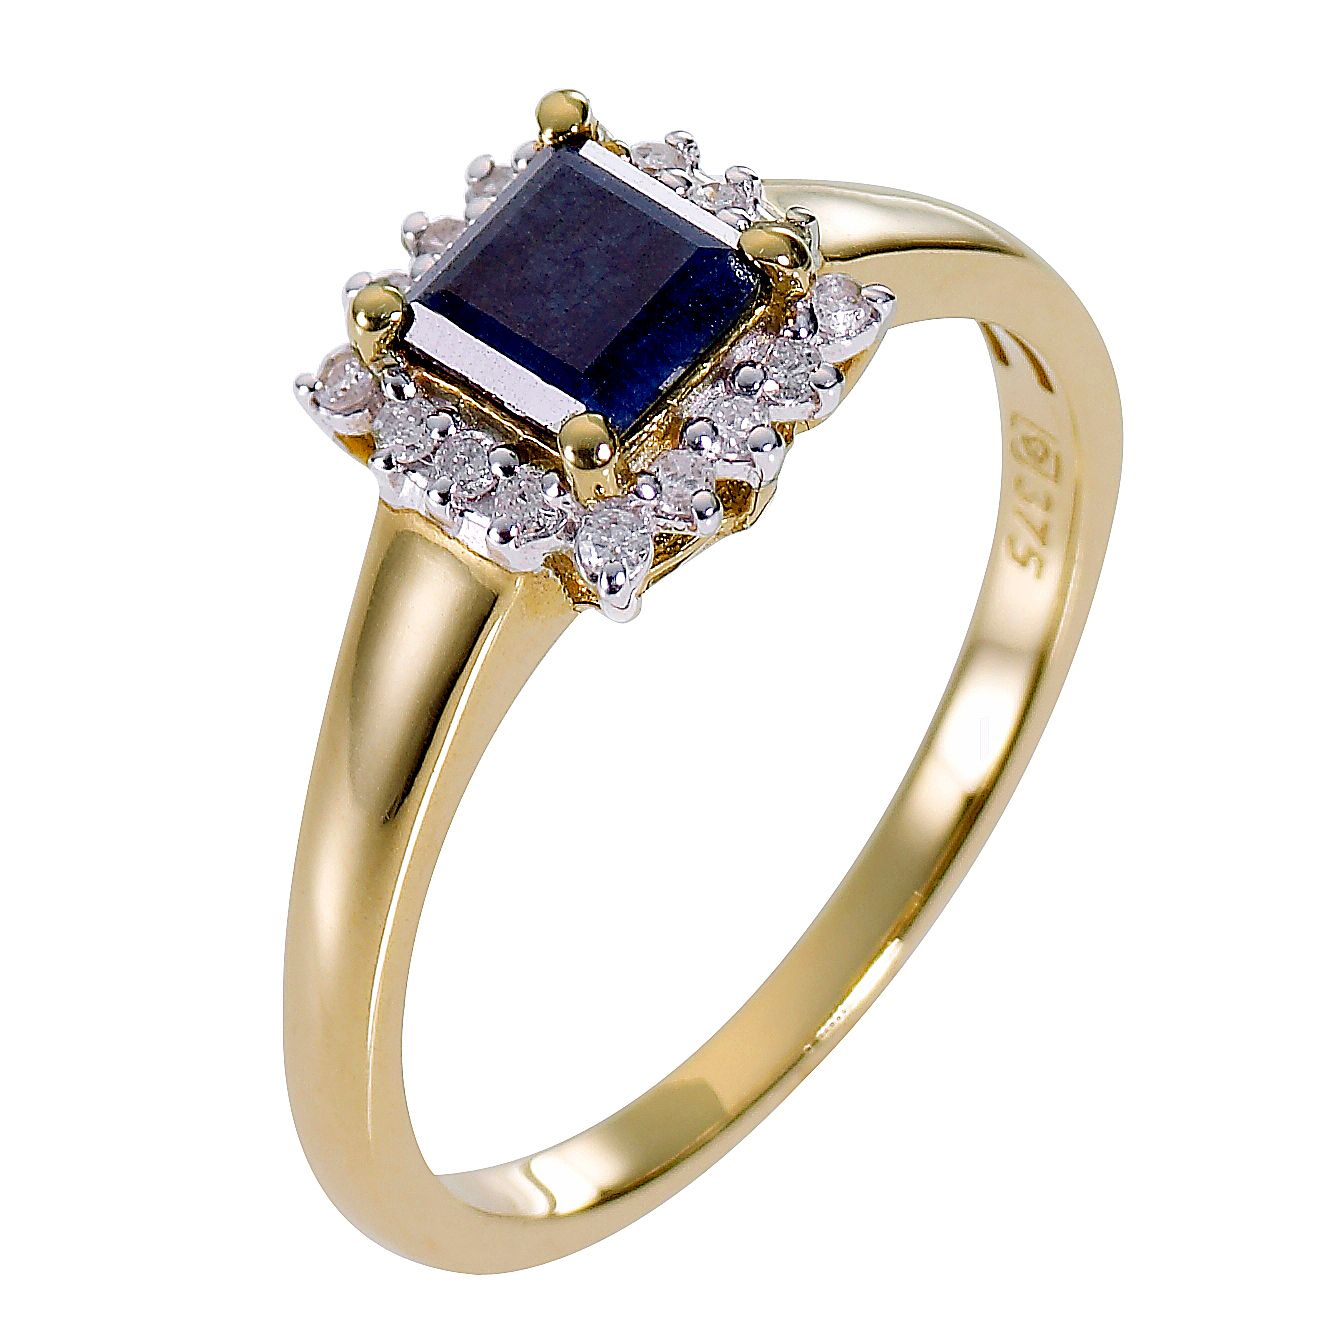 9ct Yellow Gold Diamond & Sapphire Ring - Product number 8177937